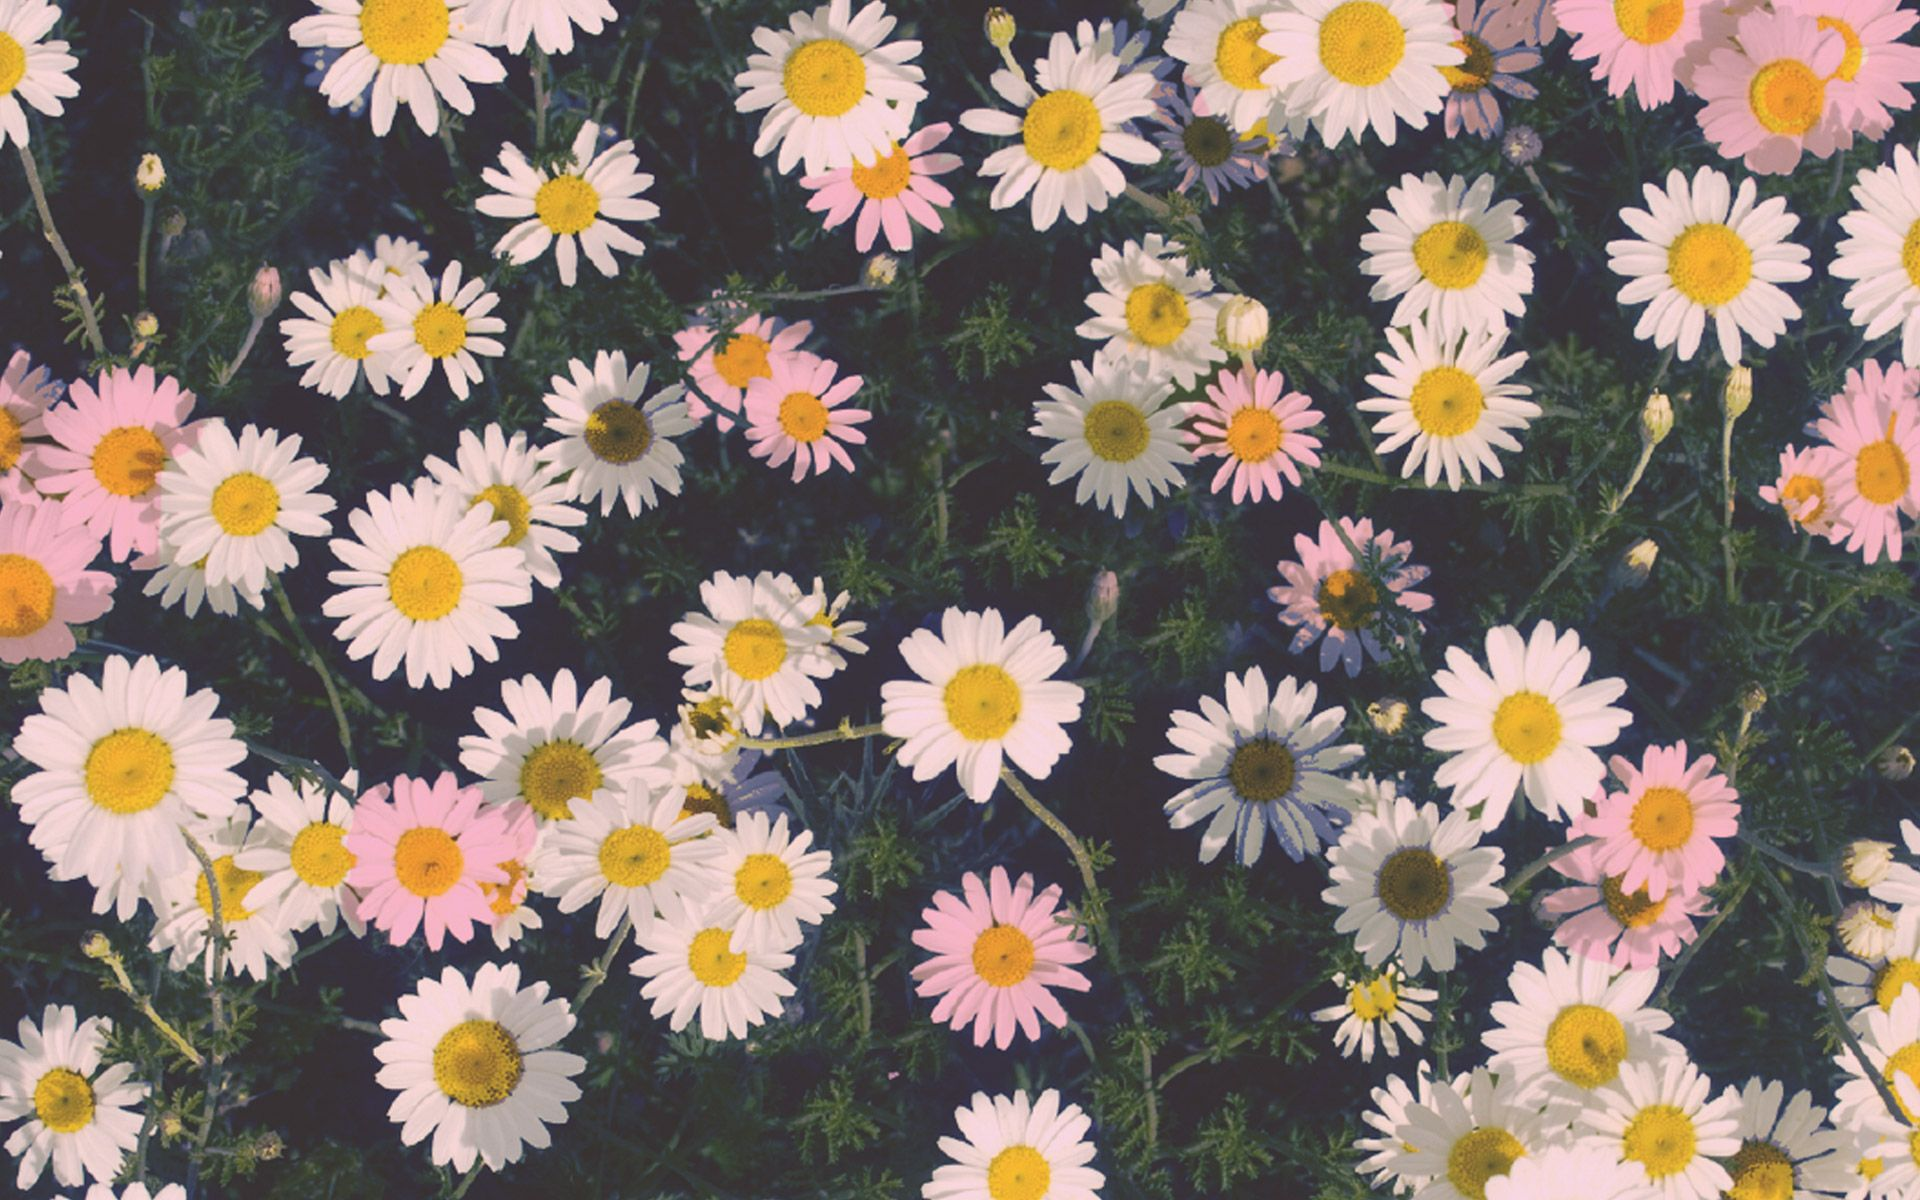 Daisy Flowers Tumblr Wallpaper Free O2t Computer Wallpaper Desktop Wallpapers Daisy Wallpaper Desktop Wallpapers Tumblr